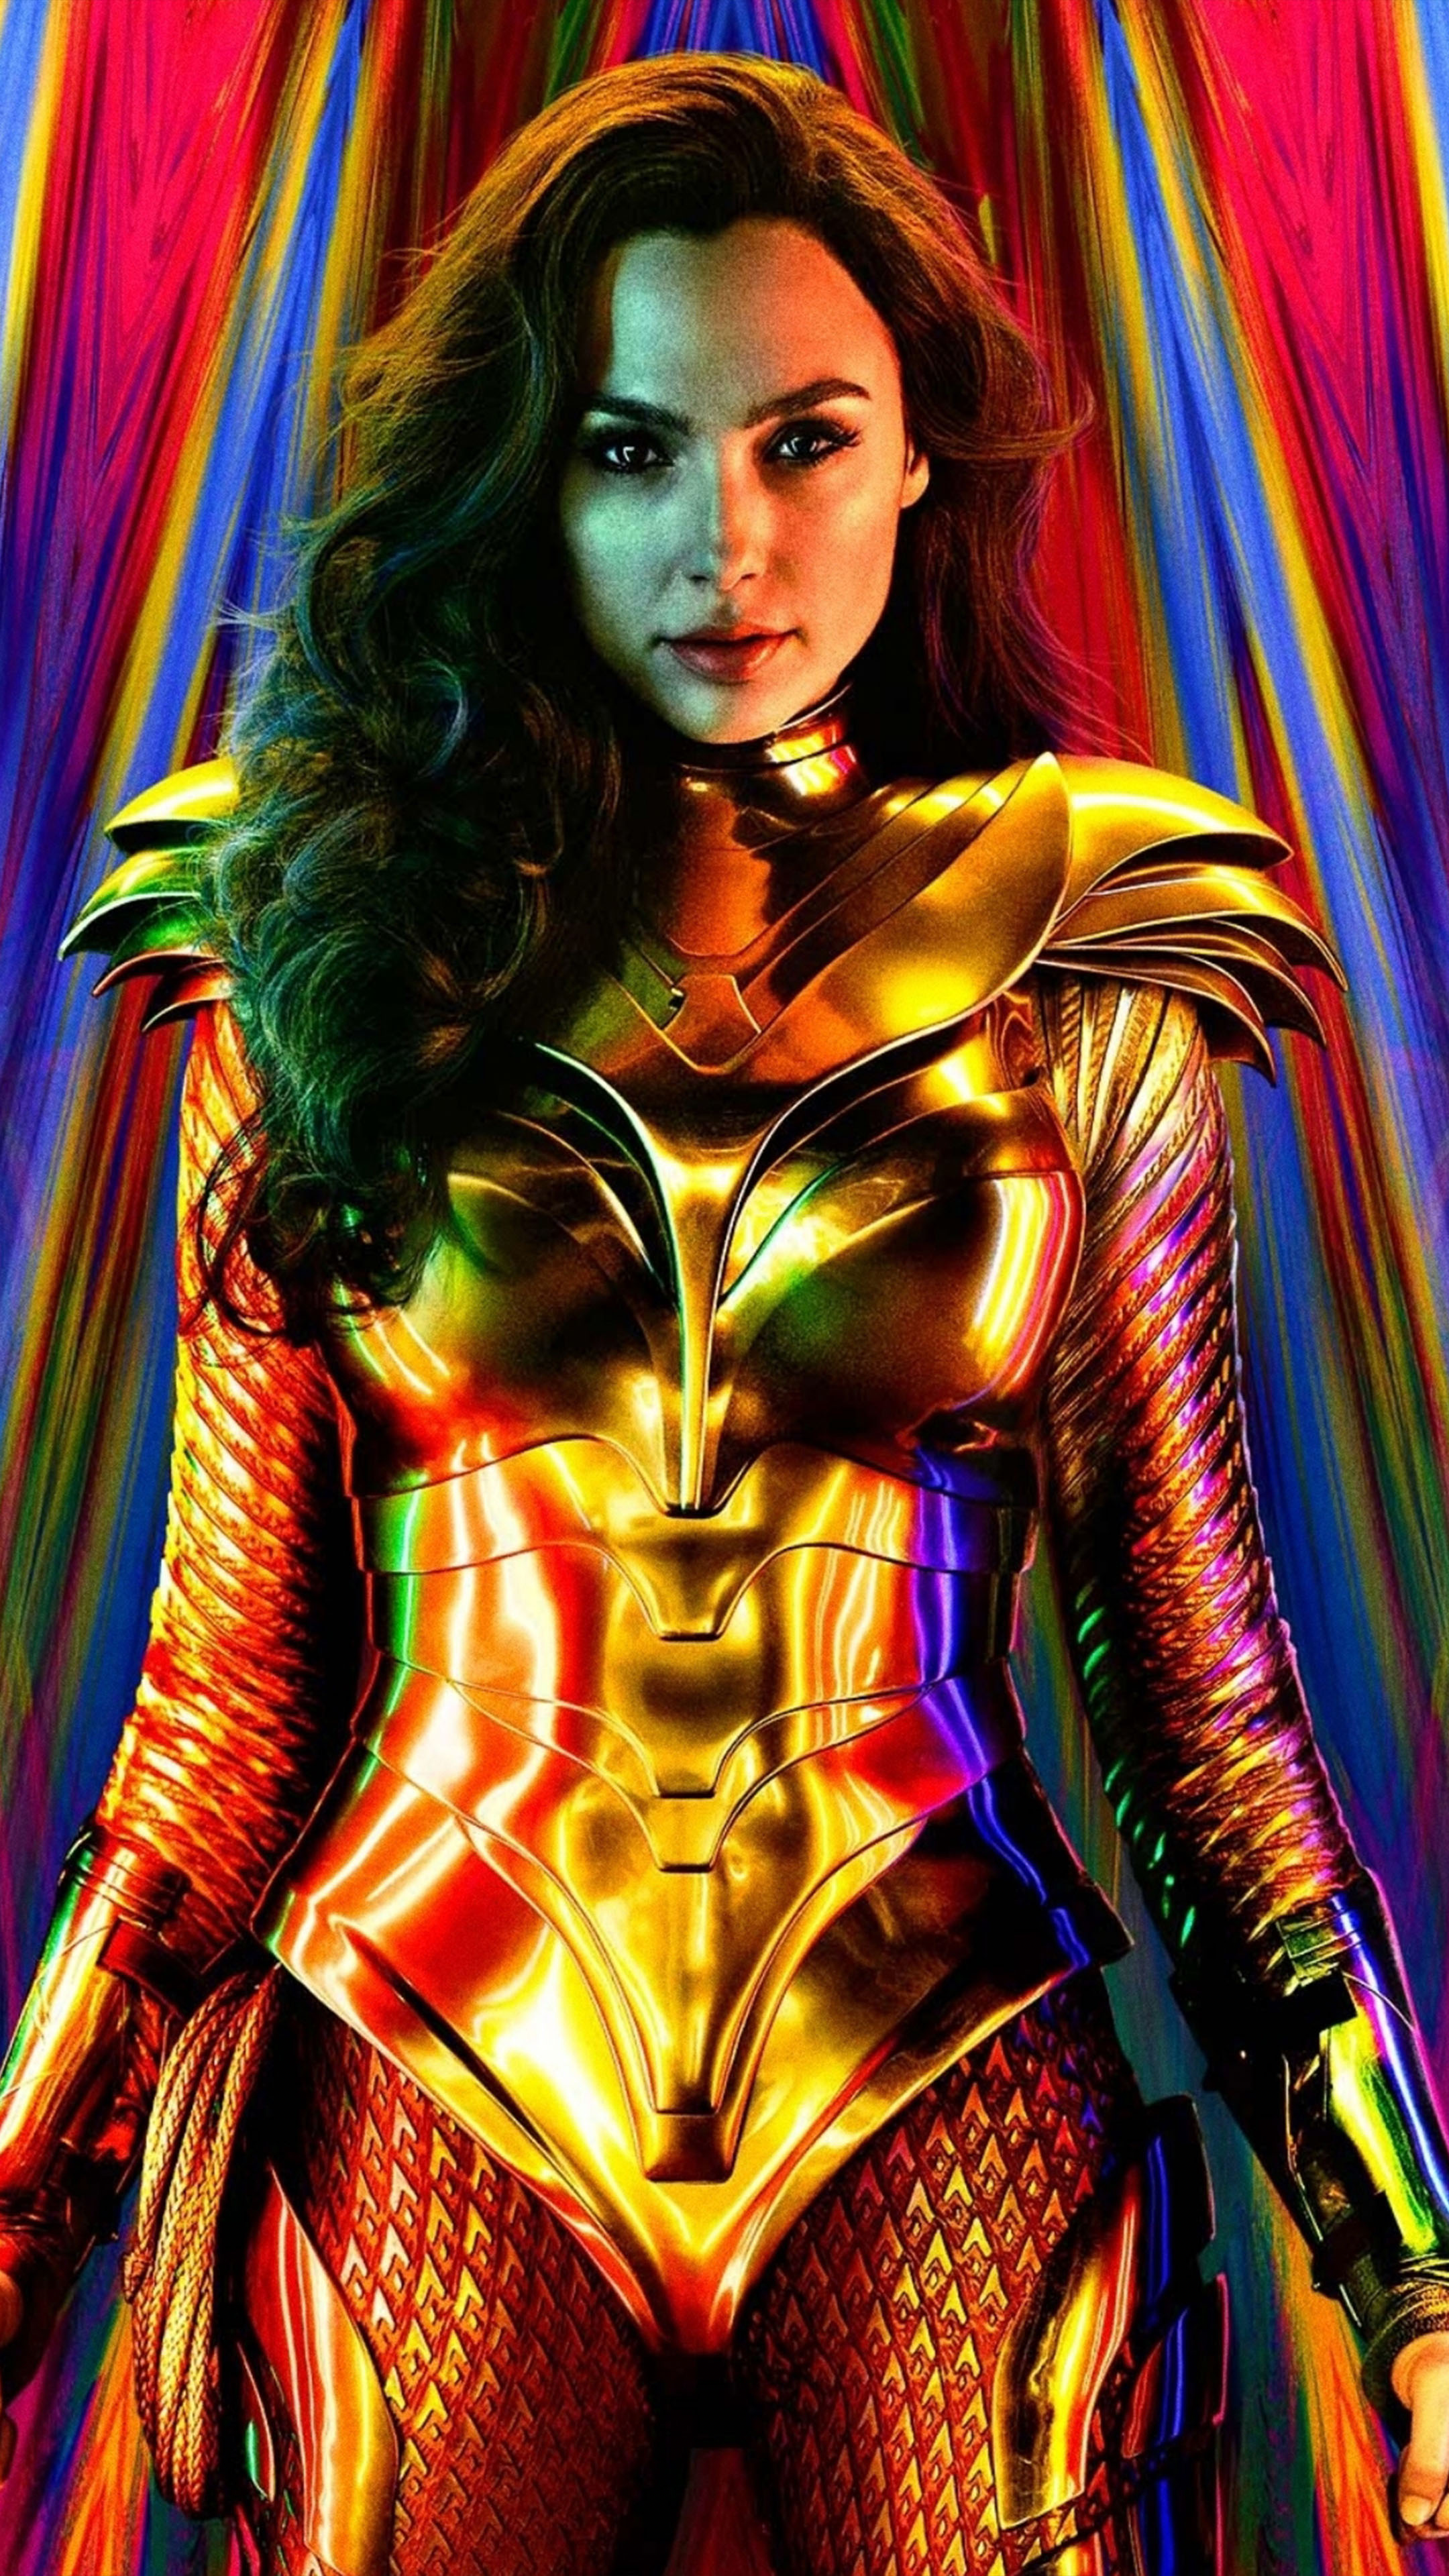 free download gal gadot in wonder woman 1984 4k ultra hd mobile wallpaper 2160x3840 for your desktop mobile tablet explore 35 wonder woman 1984 movie 2020 wallpapers wonder woman free download gal gadot in wonder woman